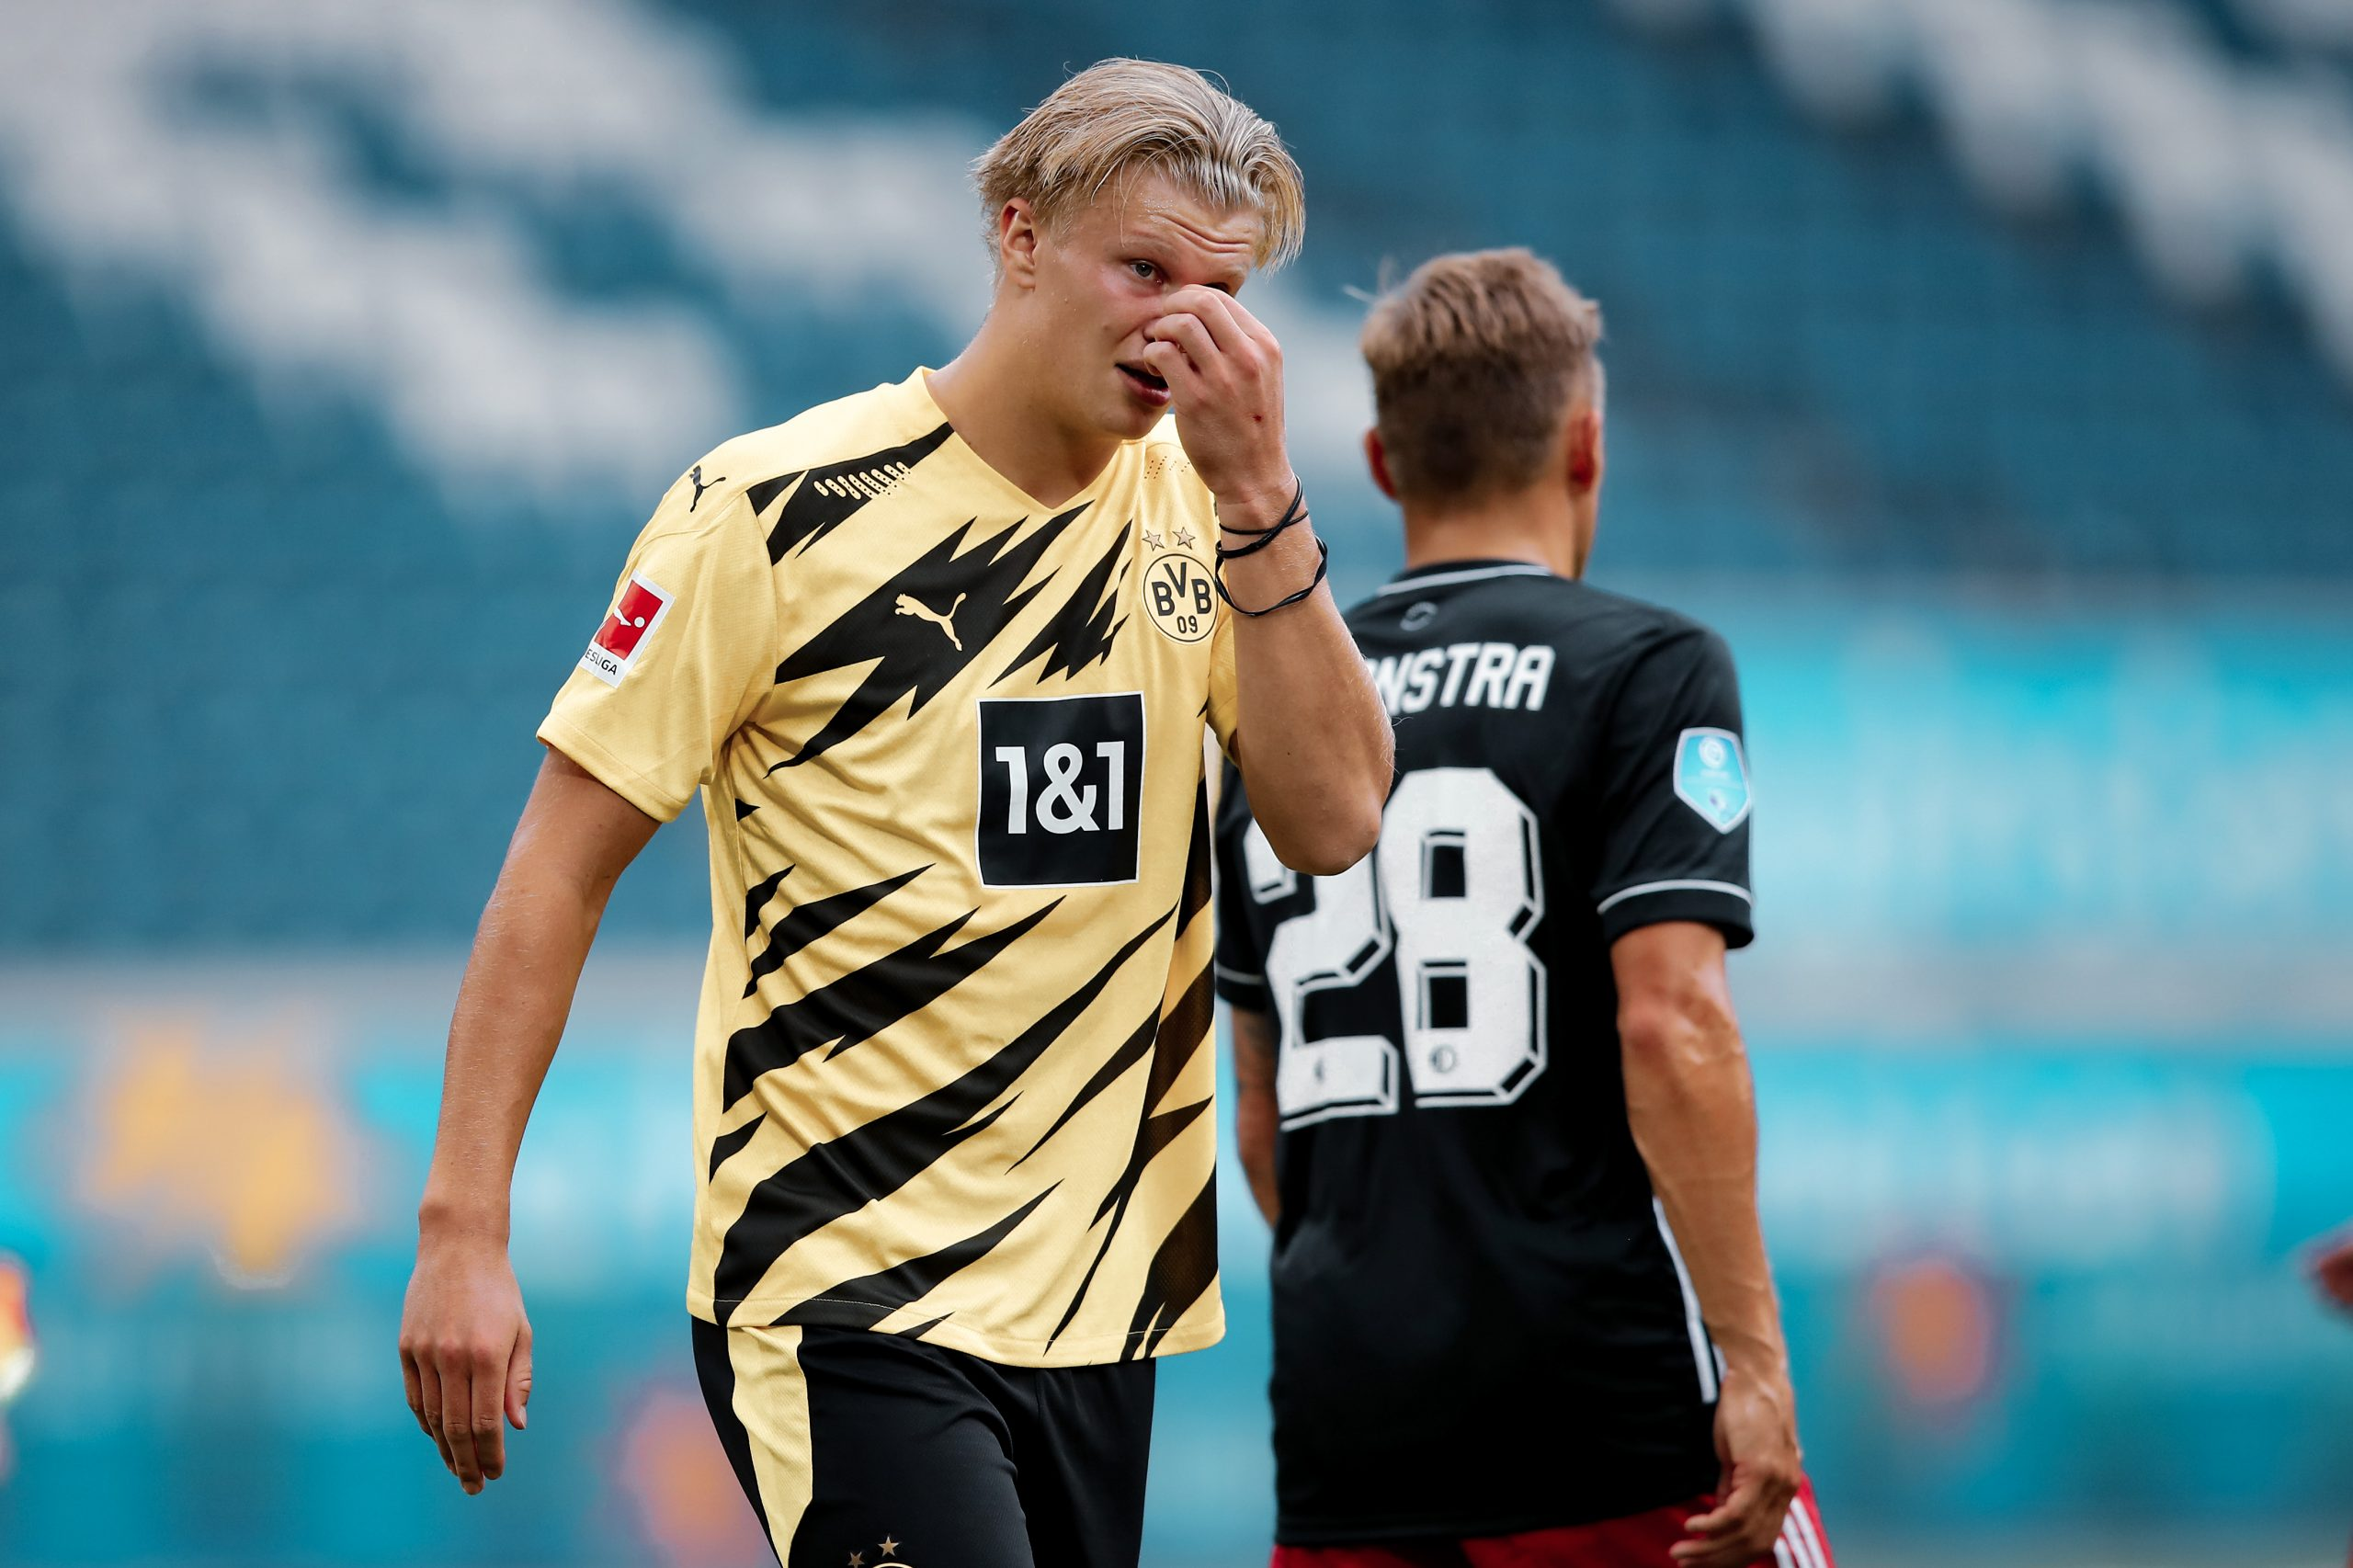 Why Erling Braut Haland Should Be Barcelona S Future Number 9 Barca Universal